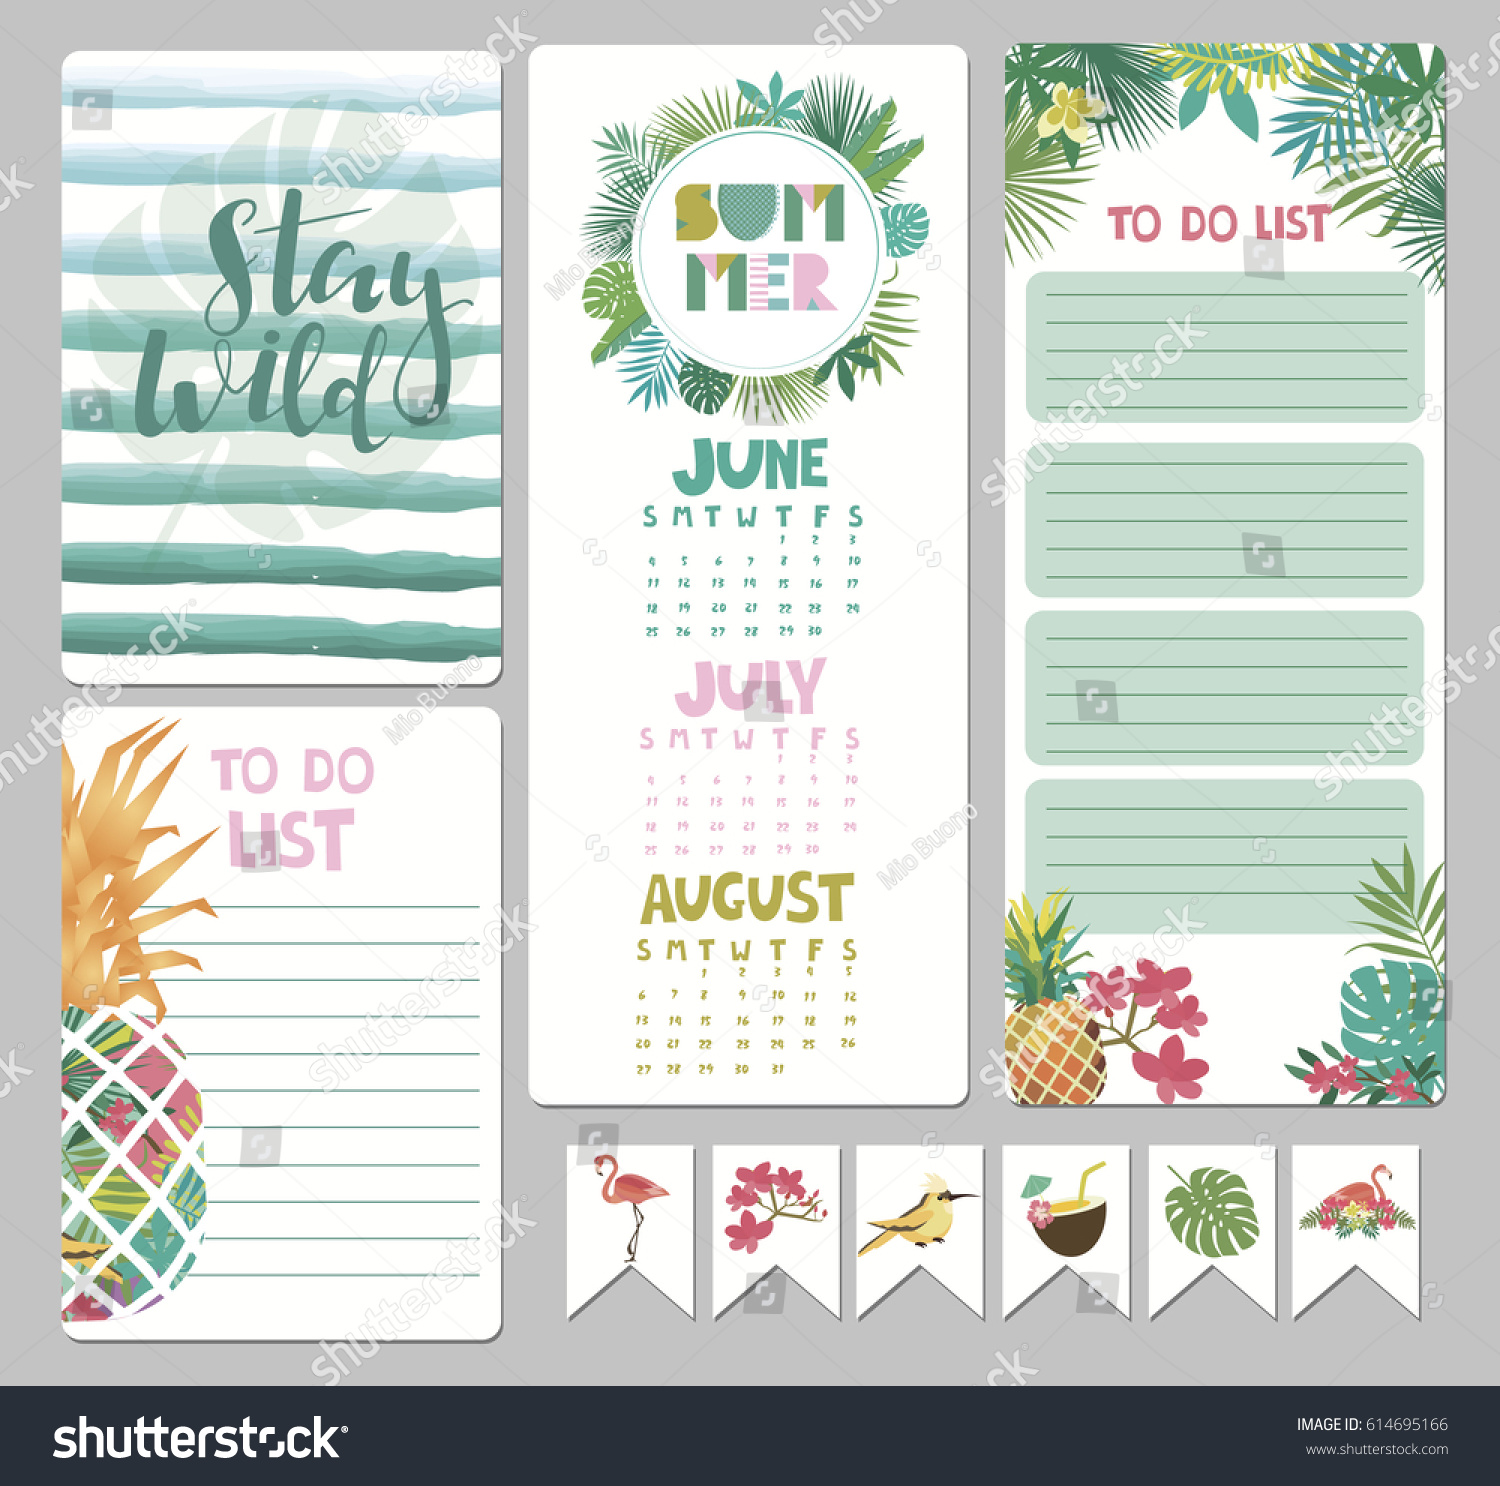 Calendar Illustration List : Set calendar daily weekly planner elements stock vector